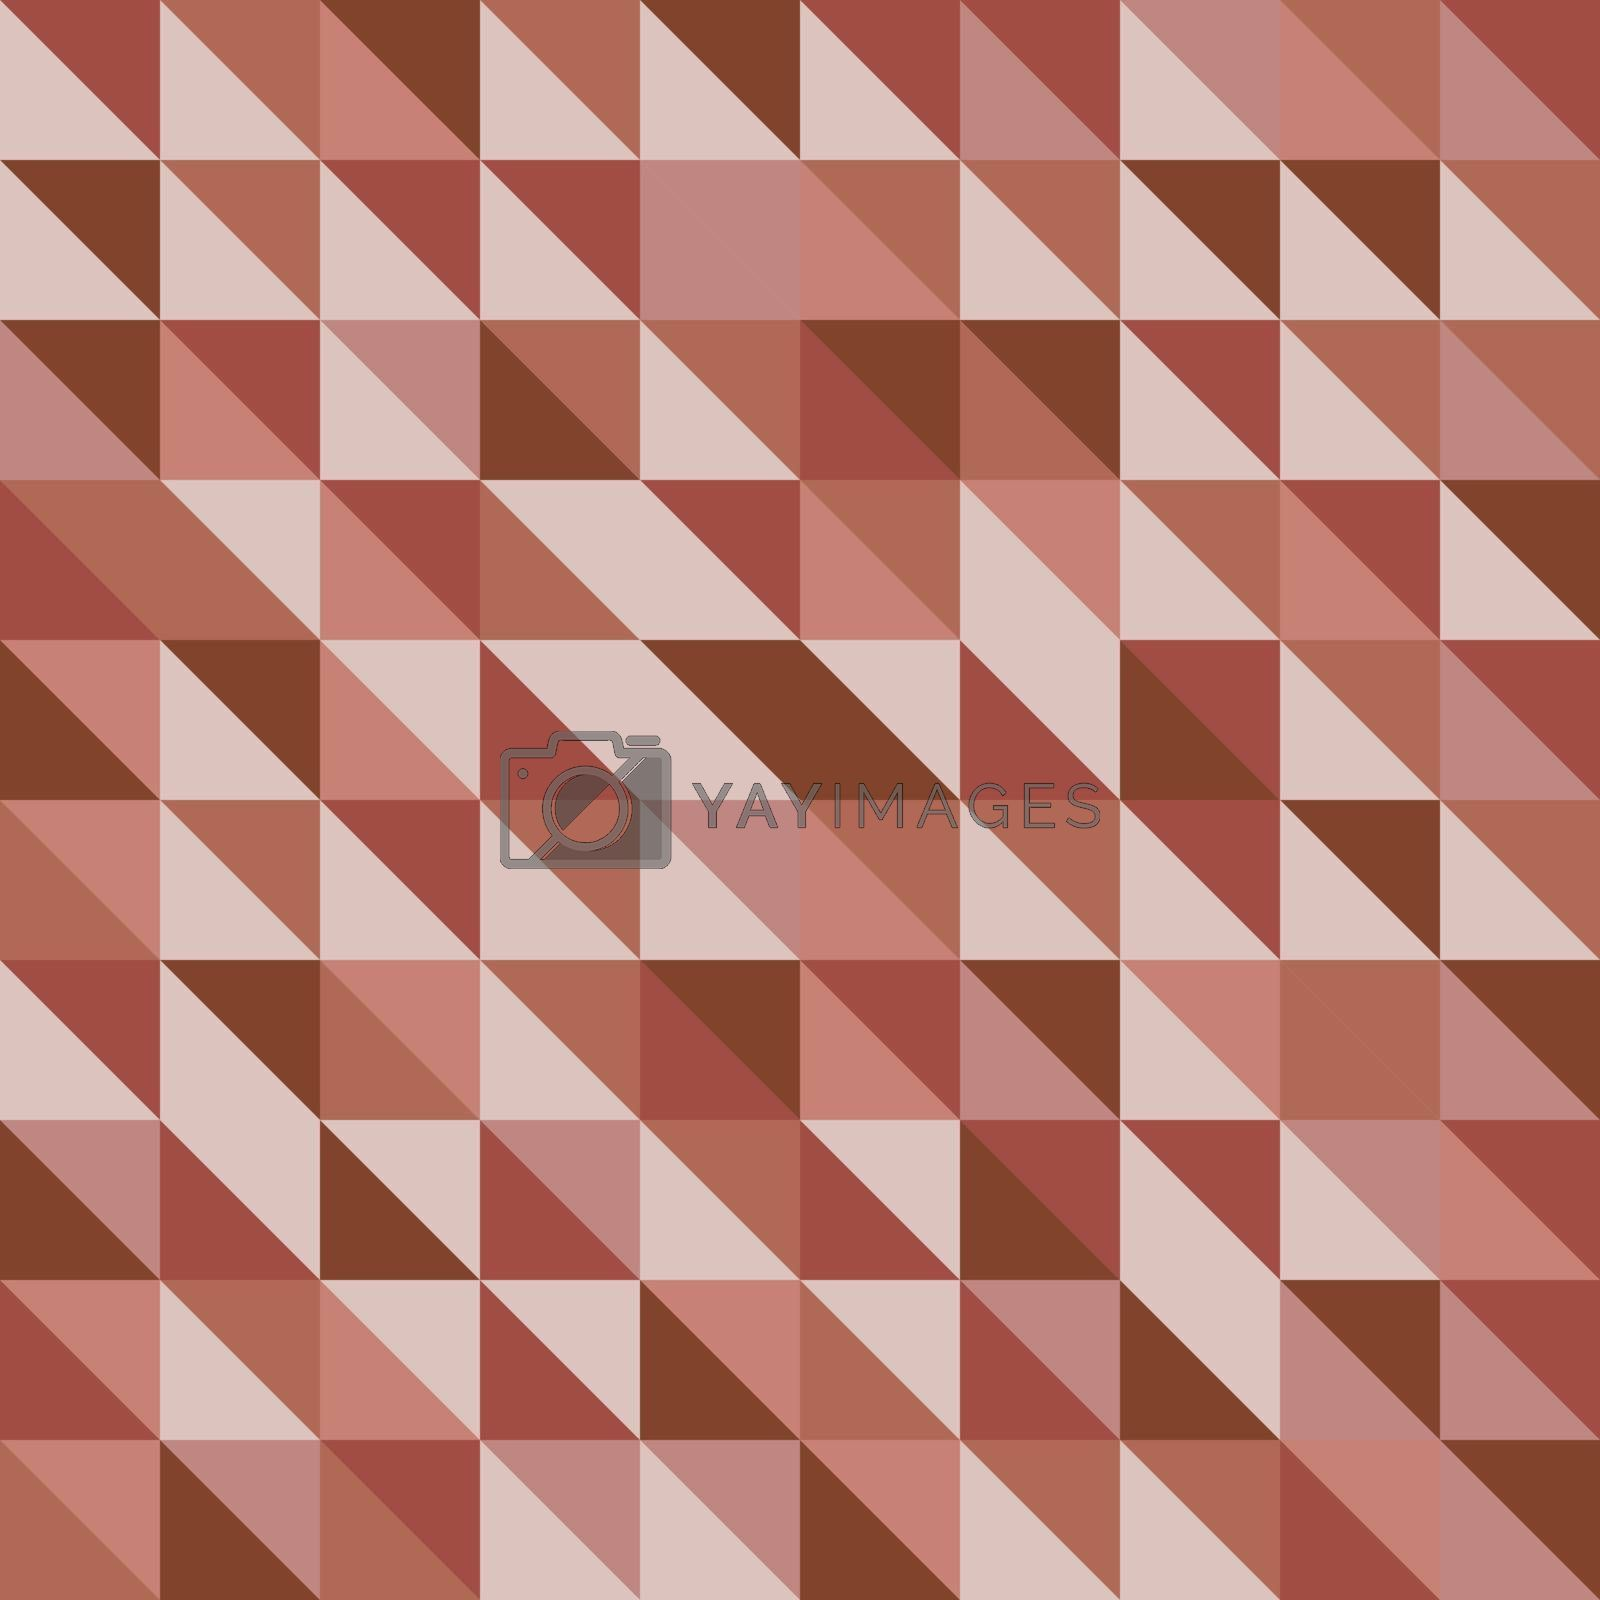 Retro triangle pattern with red background, stock vector